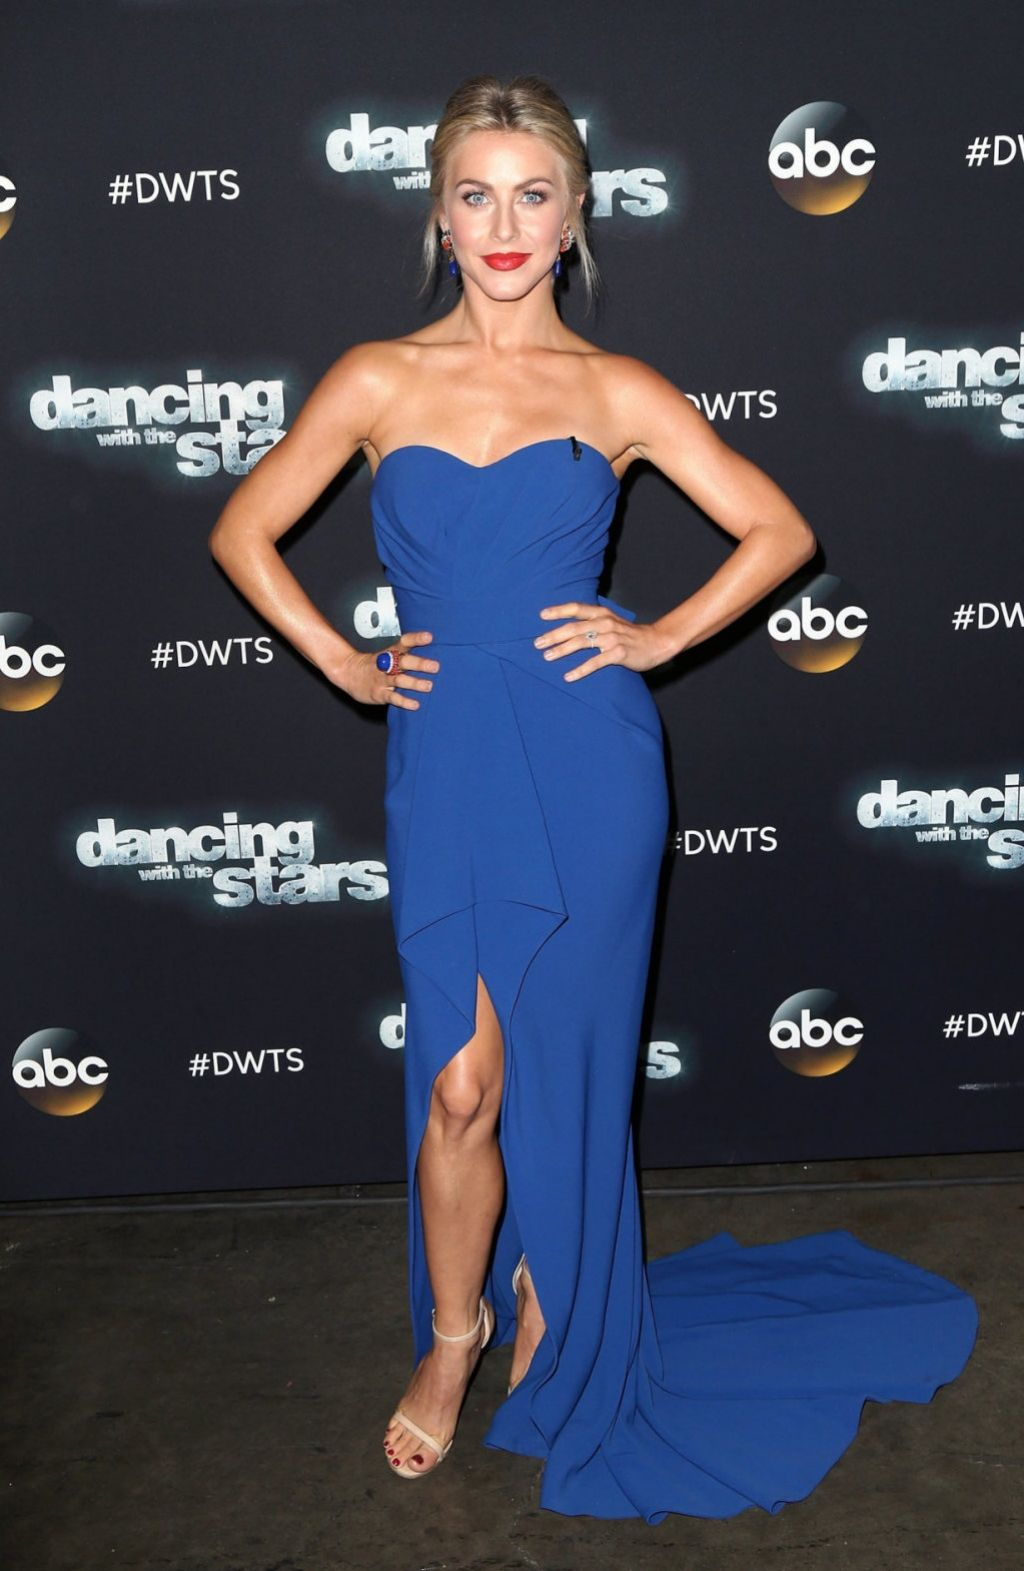 Julianne Hough Dancing With The Stars In Los Angeles